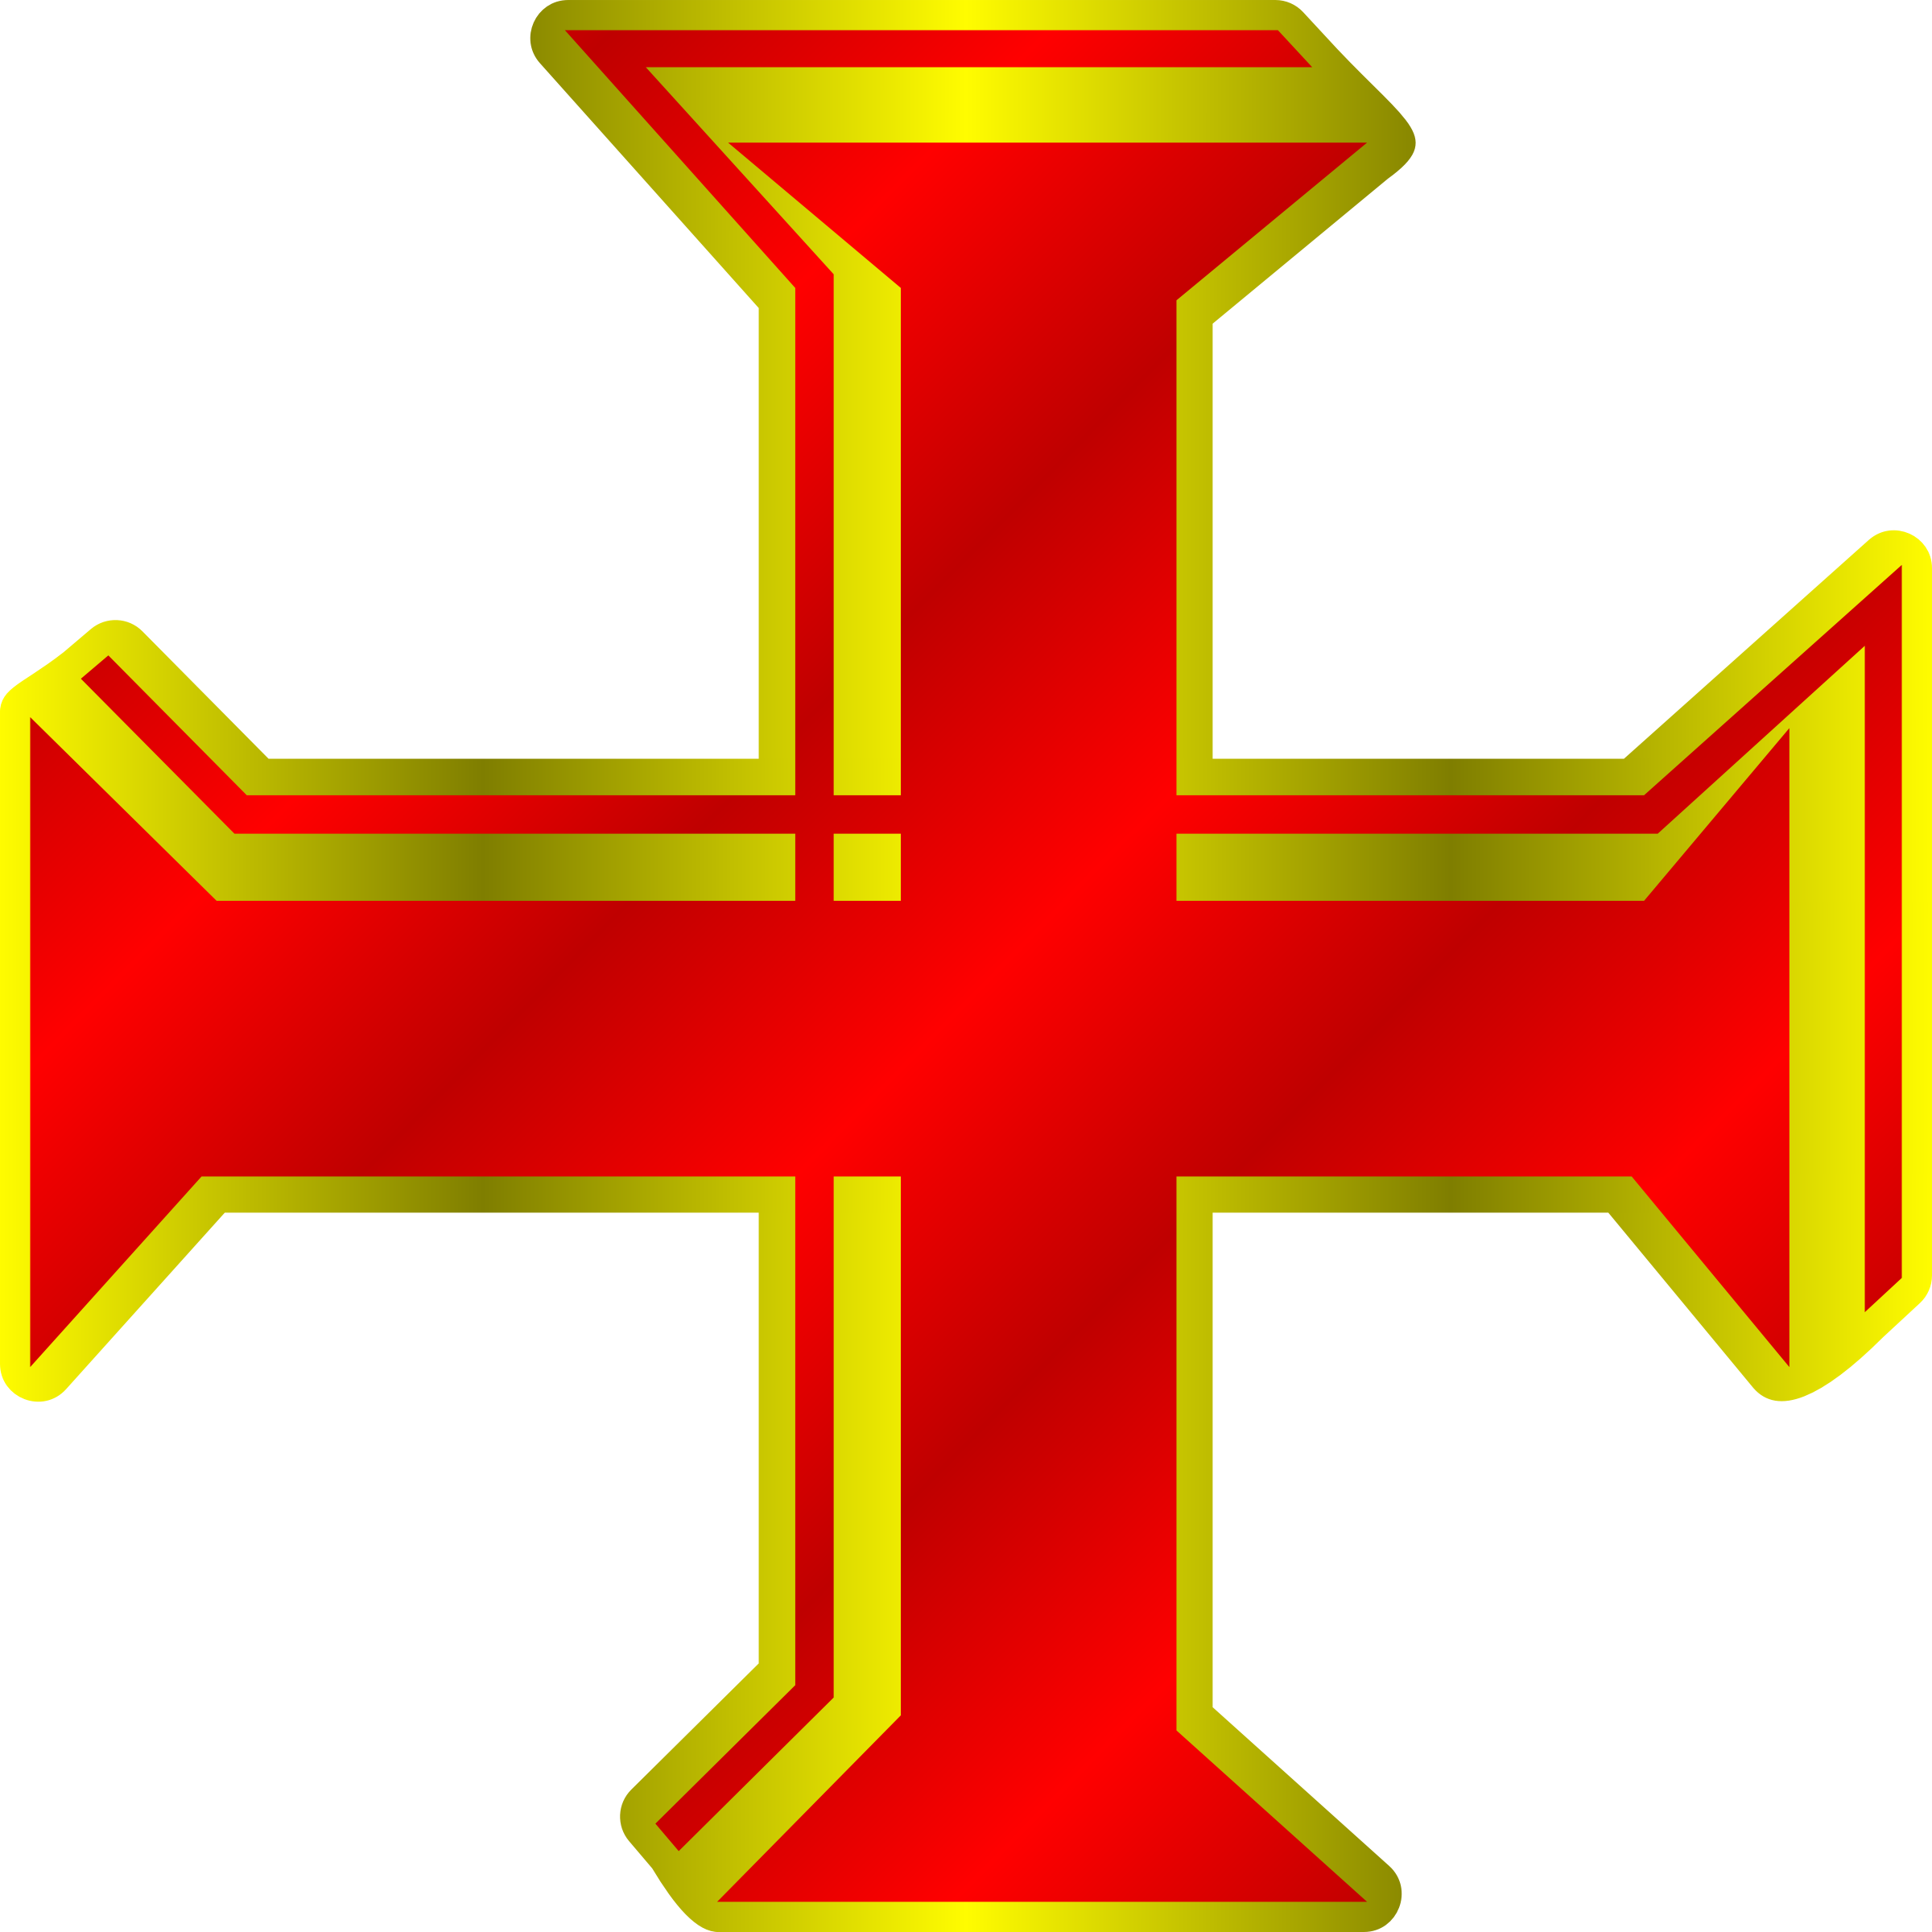 Red and Gold Cross by PhilipBarrington